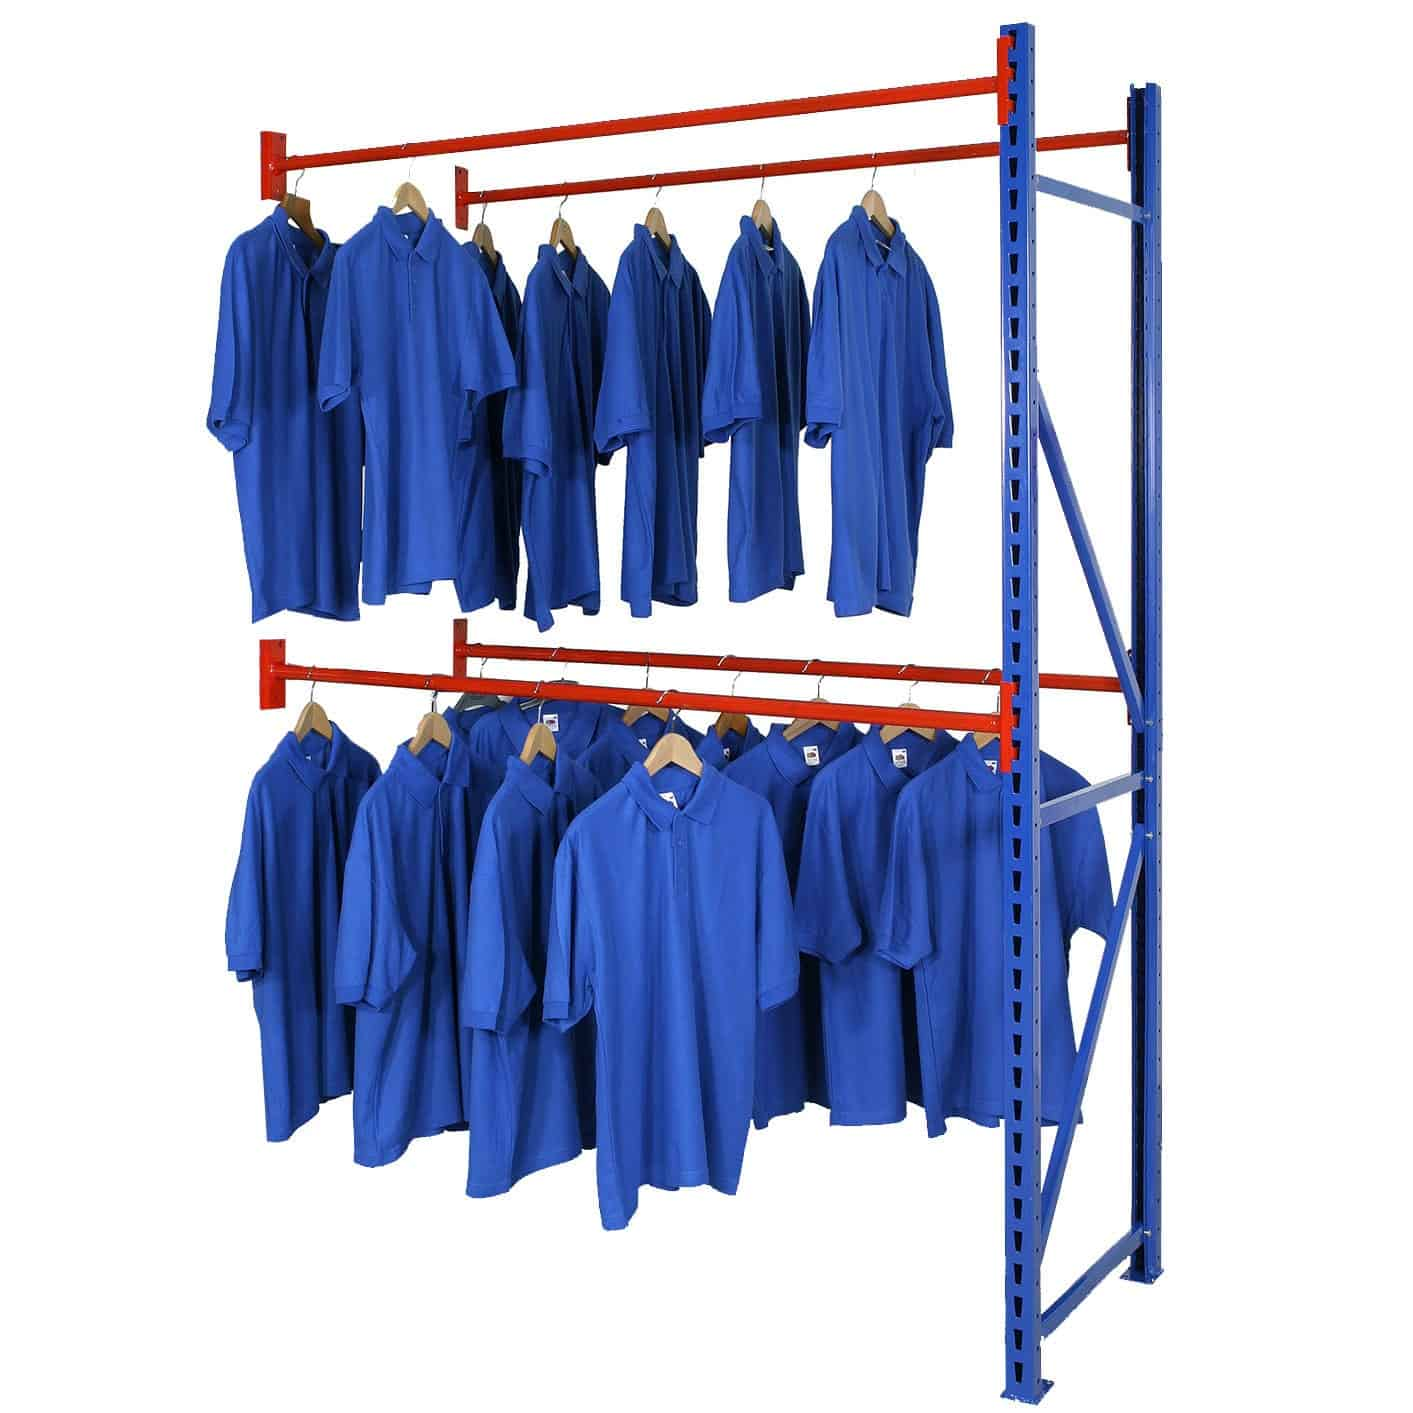 Longspan Garment Rack Extension Bay